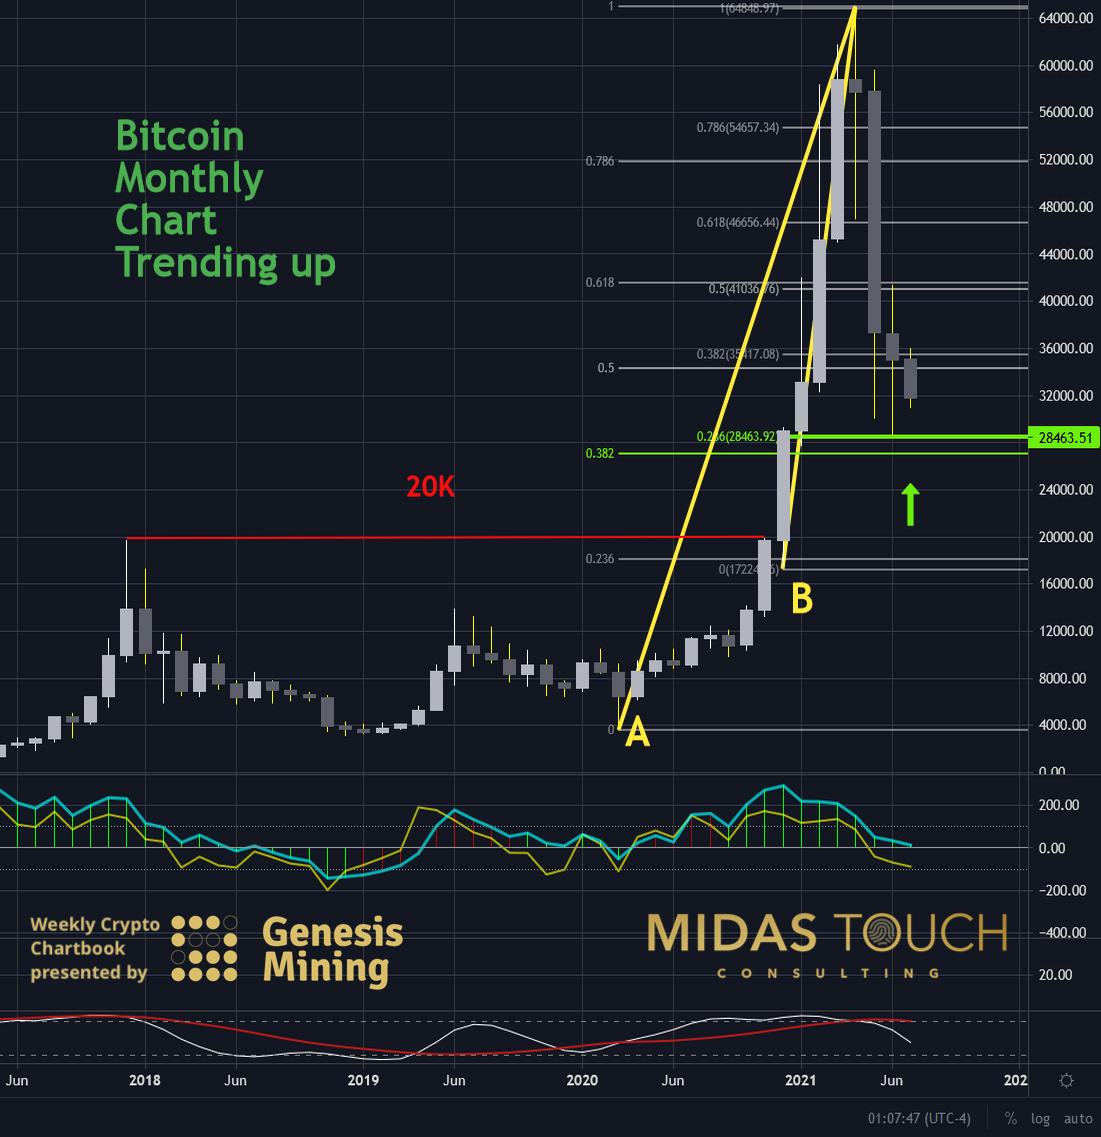 Bitcoin in US-Dollar, monthly chart as of July 20th, 2021.